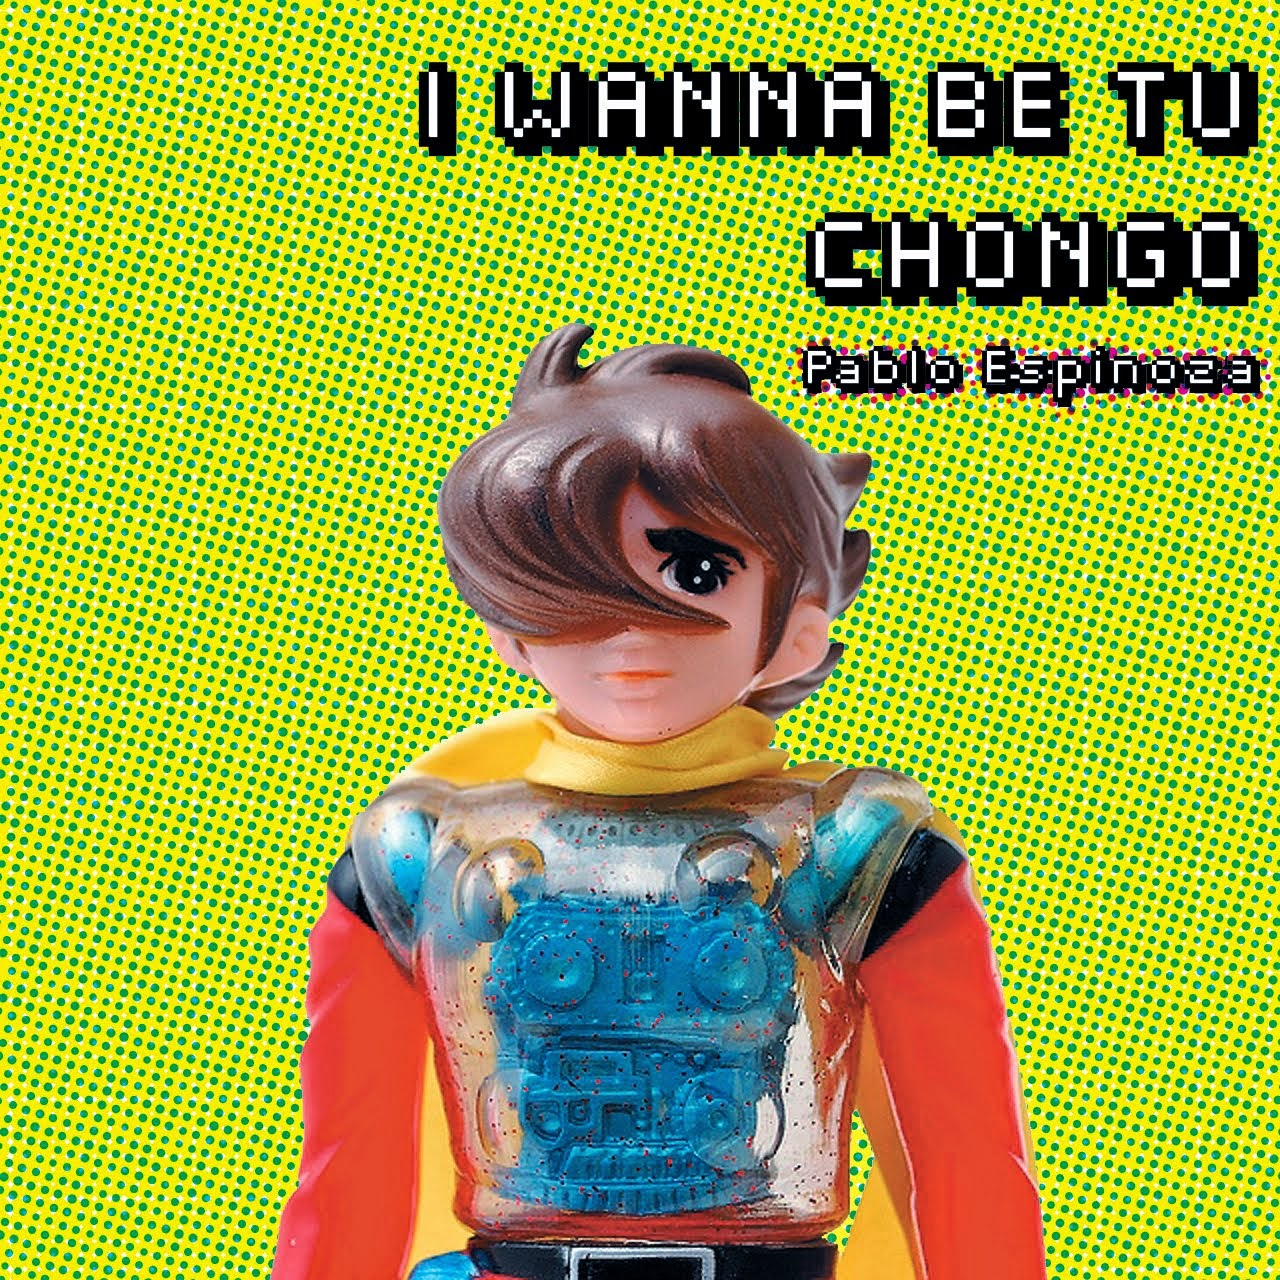 I WANNA BE TU CHONGO (Editorial Cronopio, 2015)